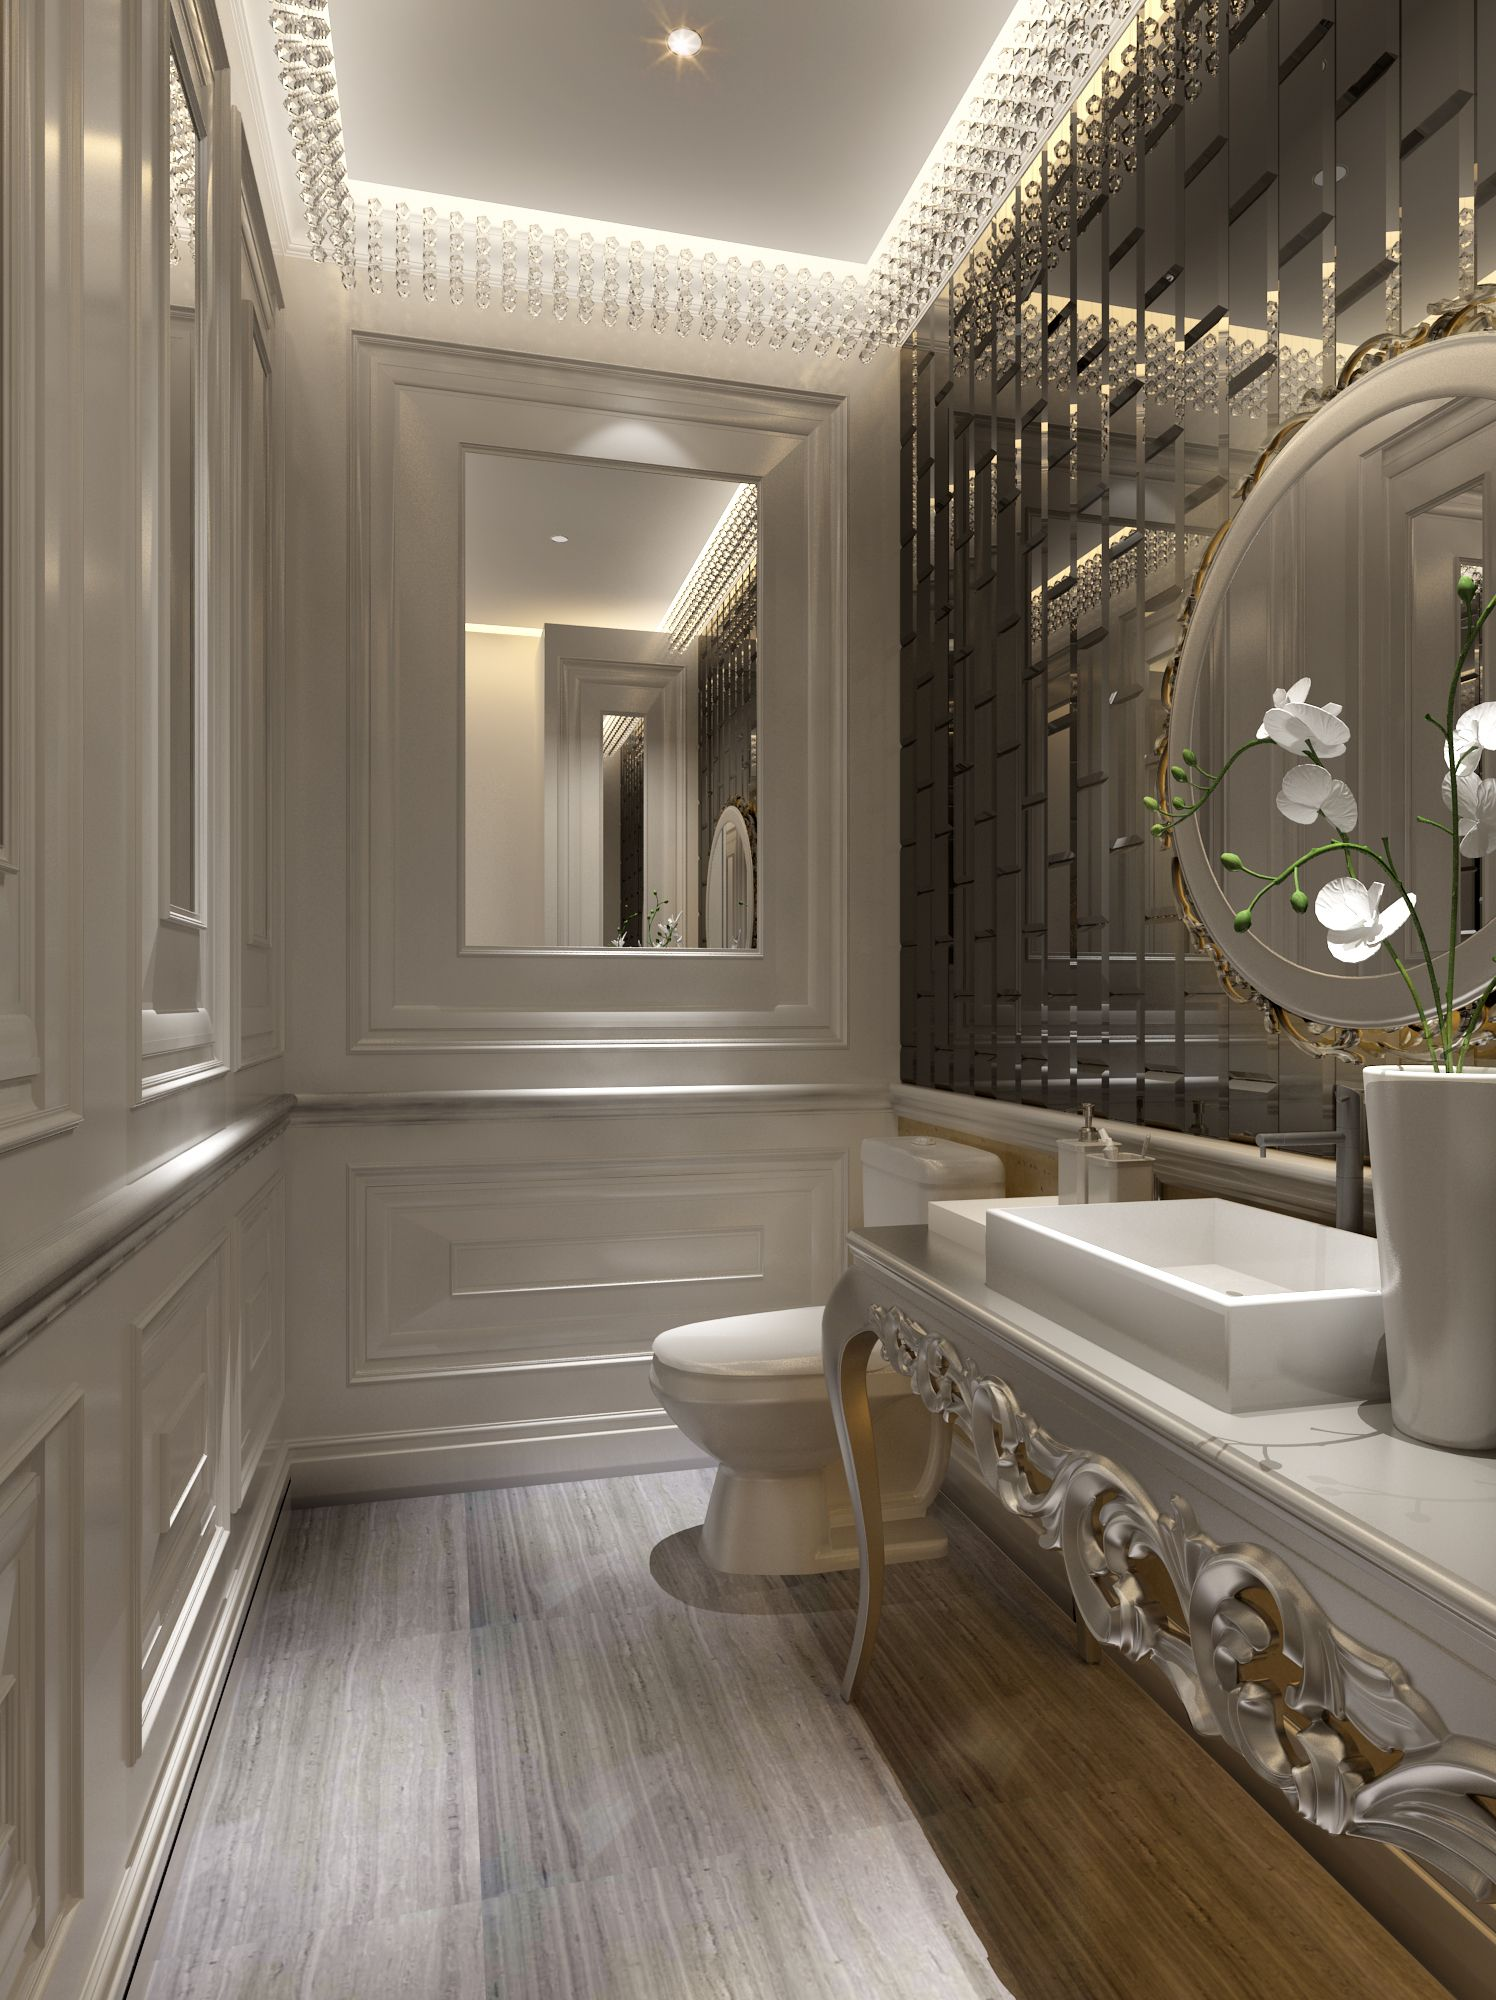 100 Must See Luxury Bathroom Ideas Luxury Bathroom Ideas That Will Open Up Your Horizons As Elegant Bathroom Top Bathroom Design Contemporary Small Bathrooms